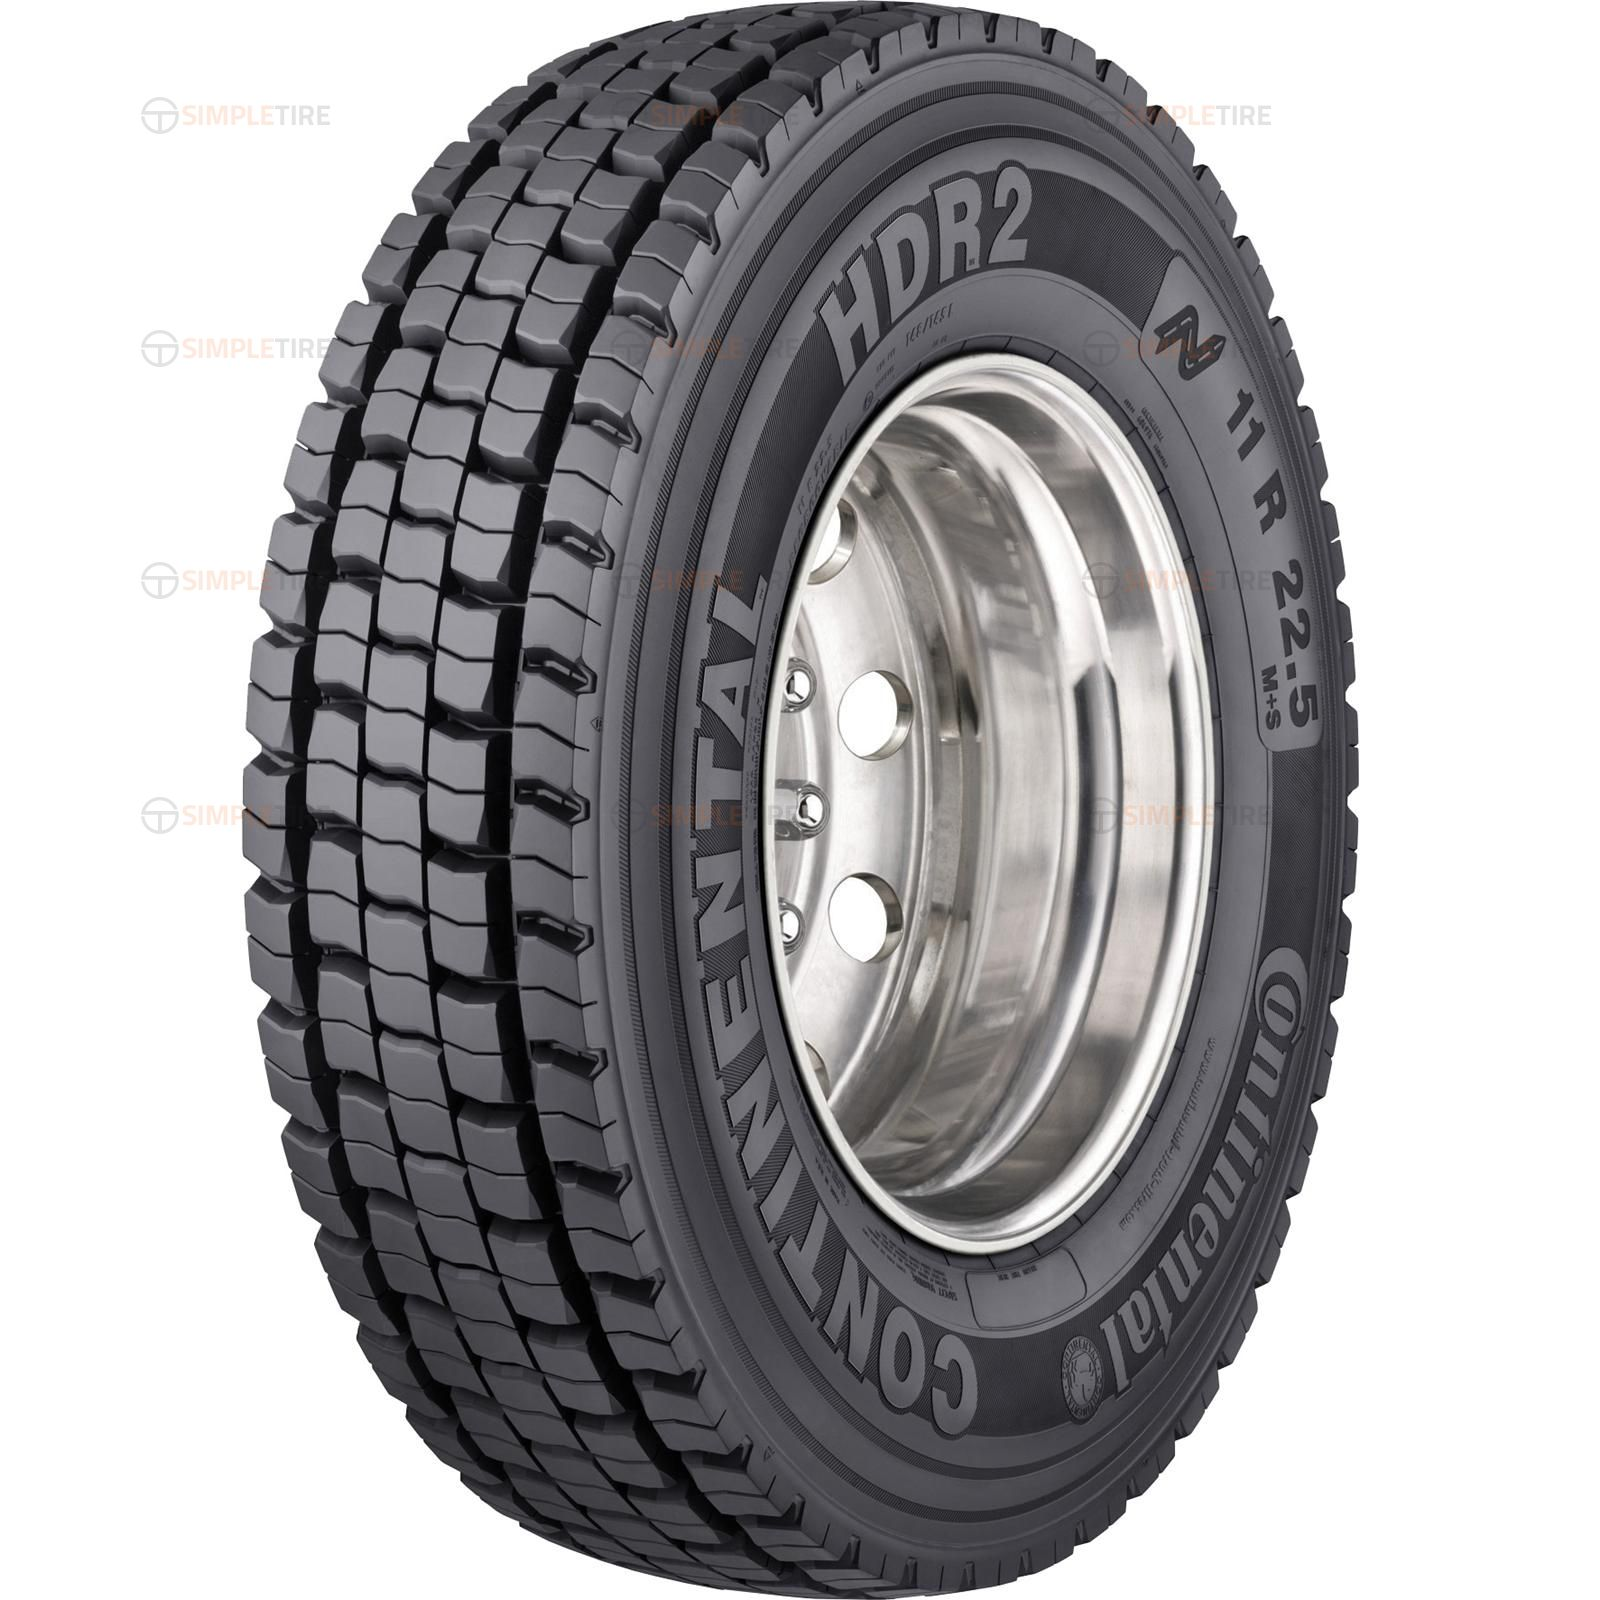 05221410000 315/80R22.5 HDR2 Tread B Continental